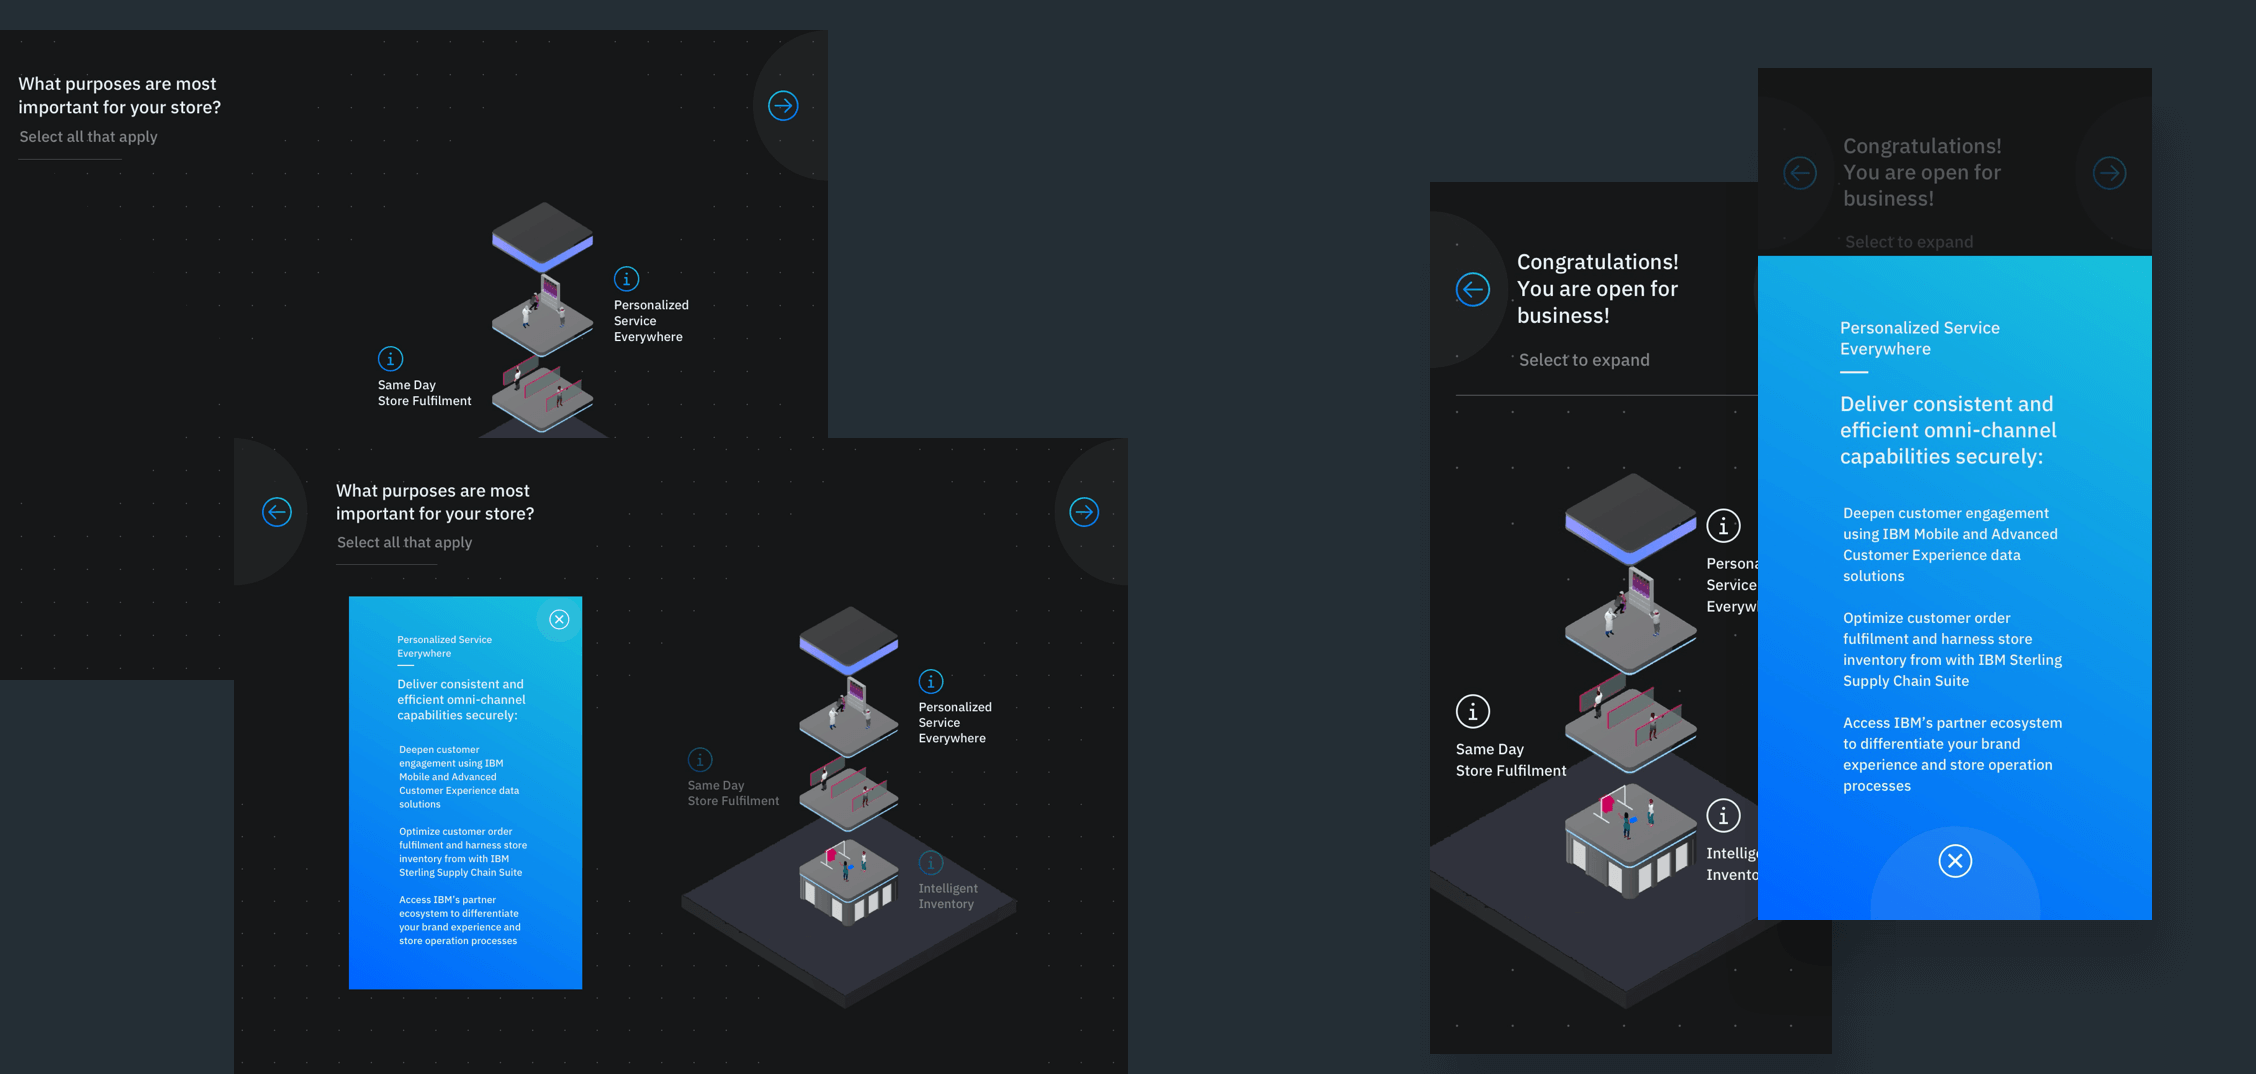 The reveal designs for desktop and mobile